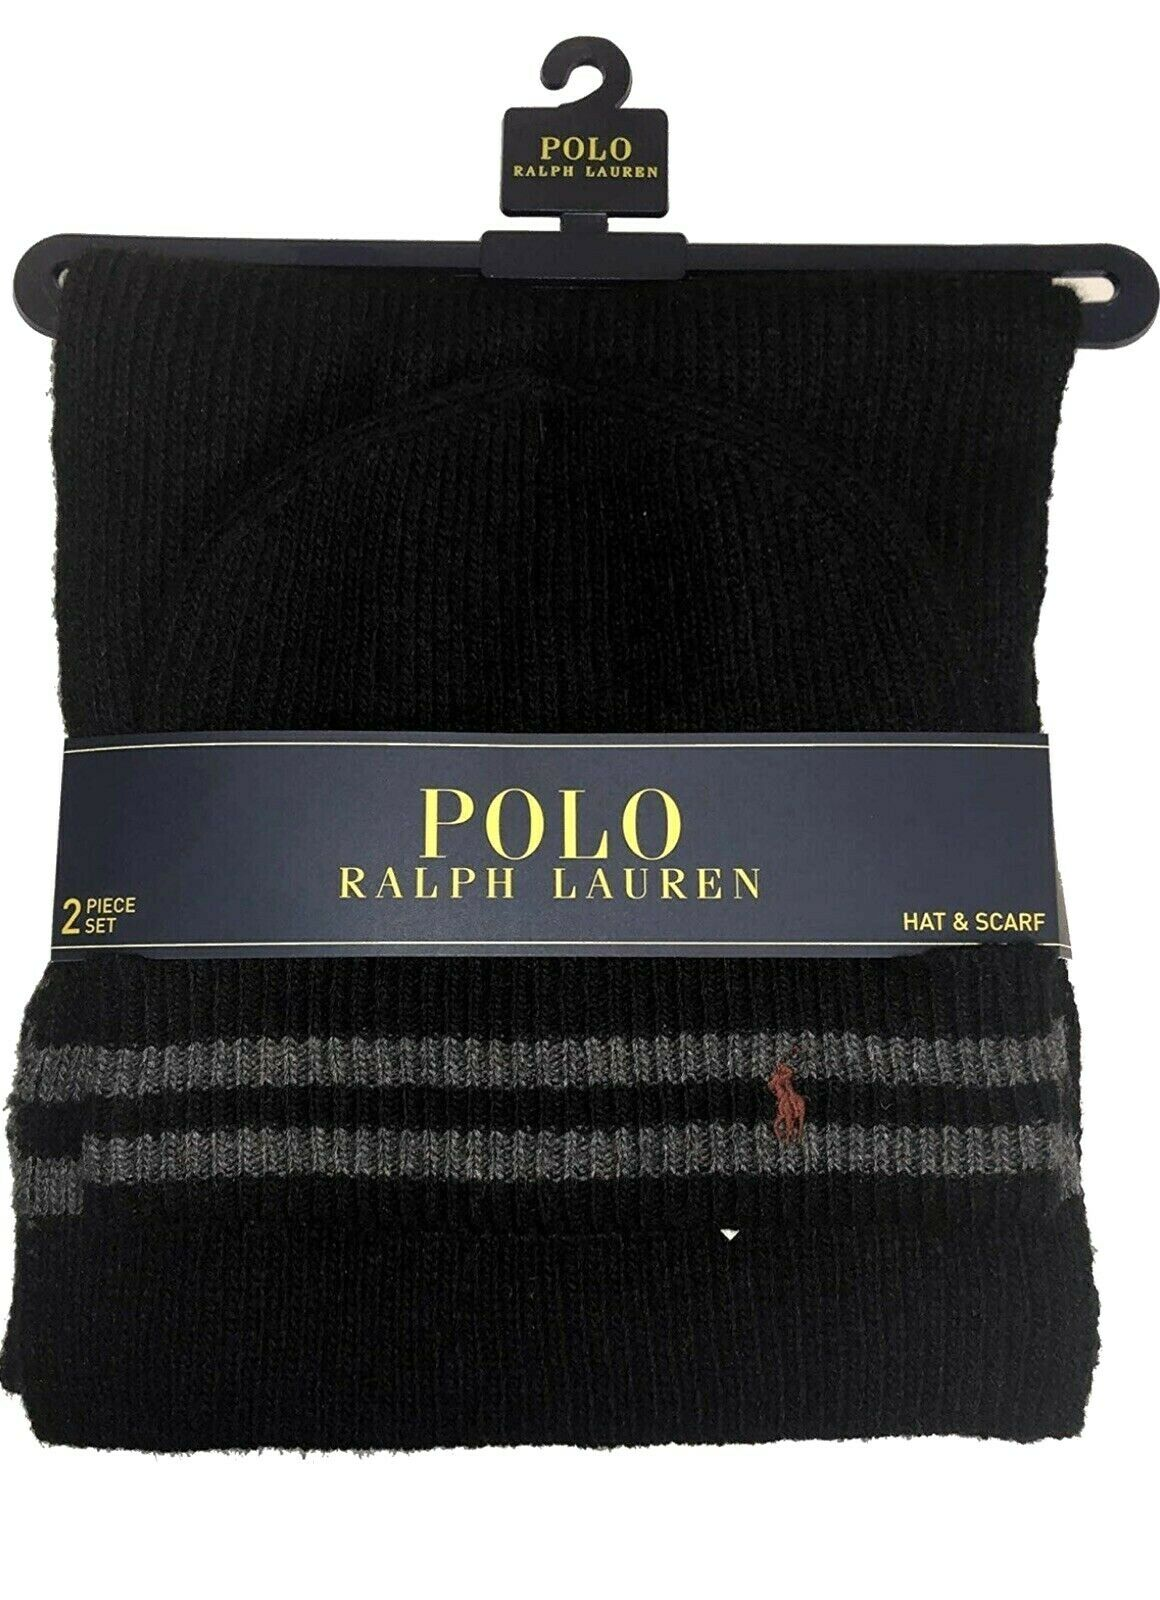 ** New ** Polo Ralph Lauren Authentic Mens Hat Scarf Set 2 Black Gray Red